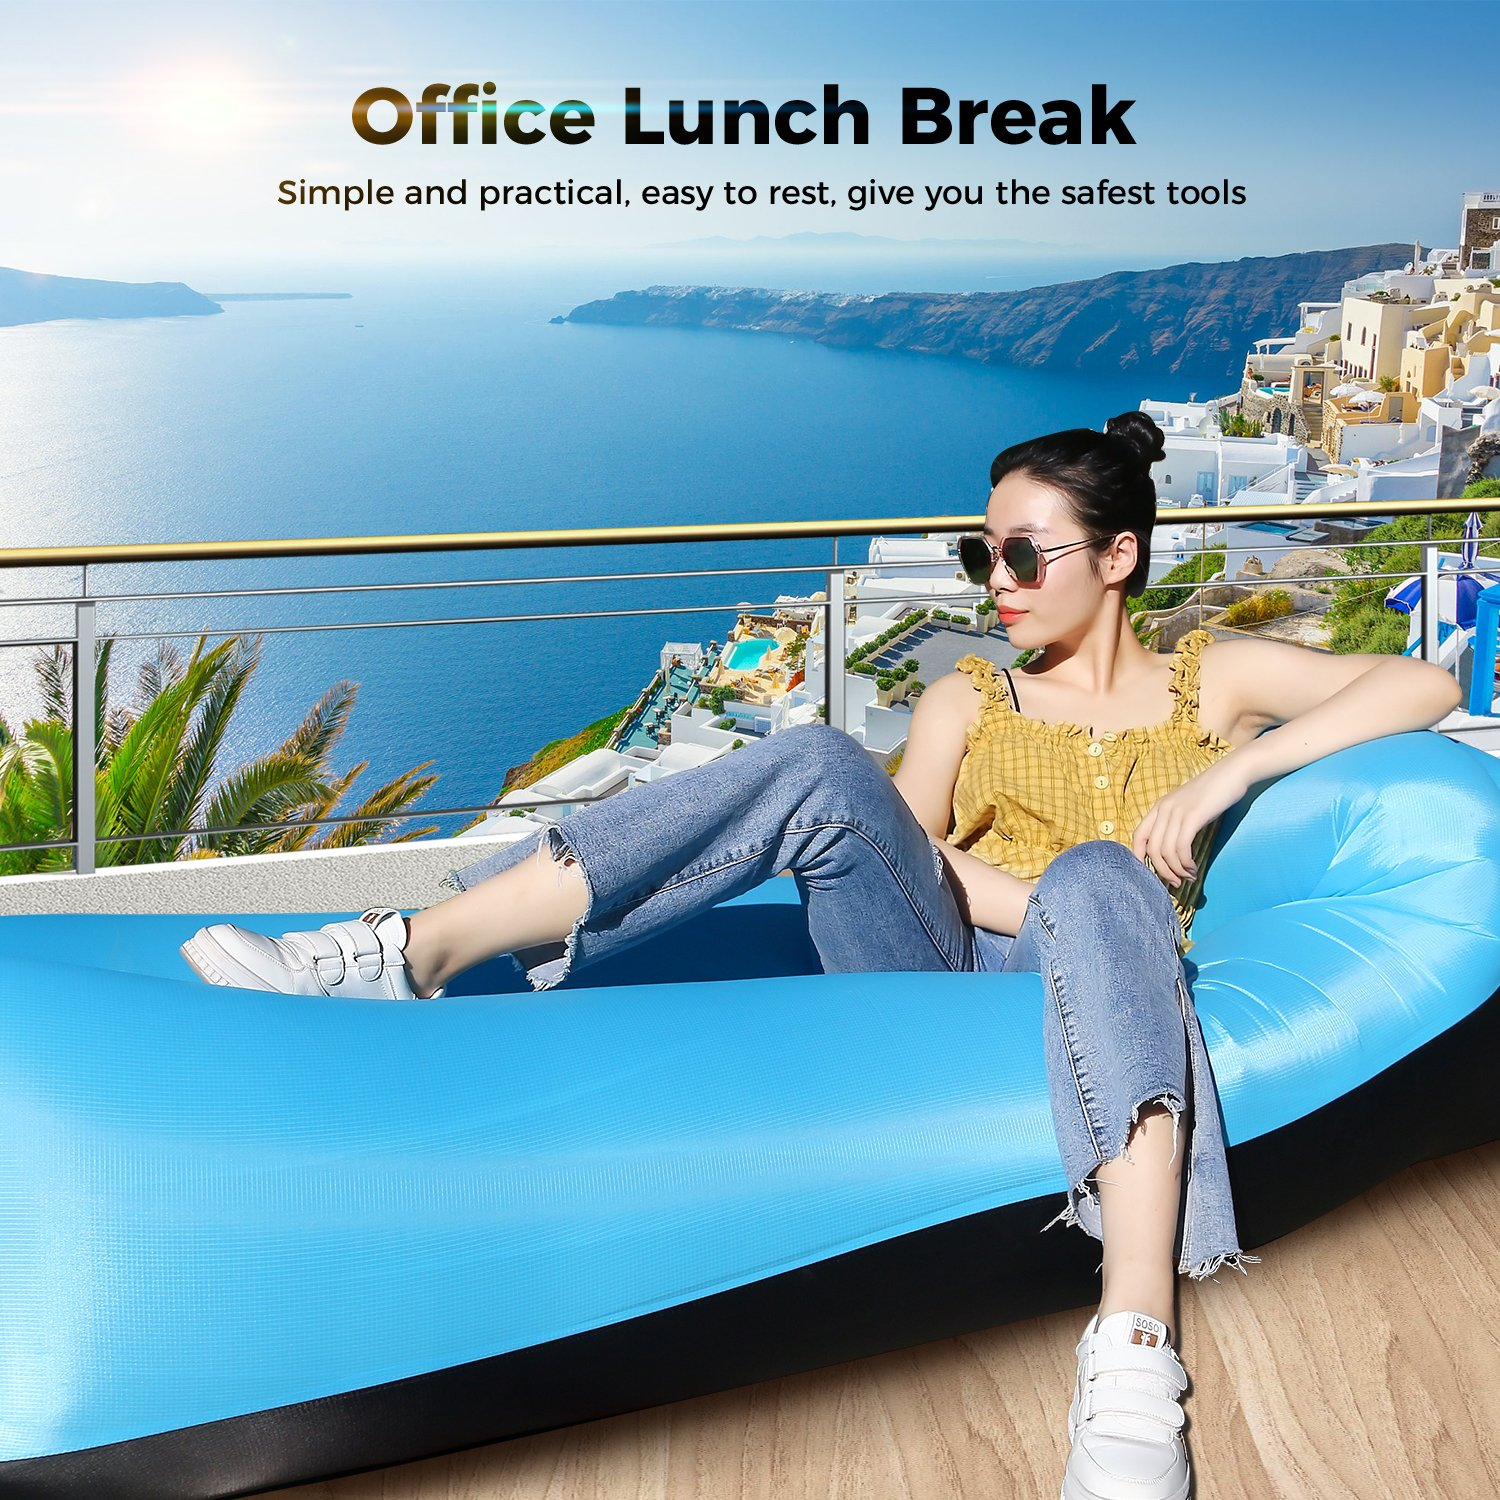 Fishing Swimming EooCoo Inflatable Sofa Bed Hiking Inflatable Lounger Chair for Outdoor Garden Park Camping Beach Backyard